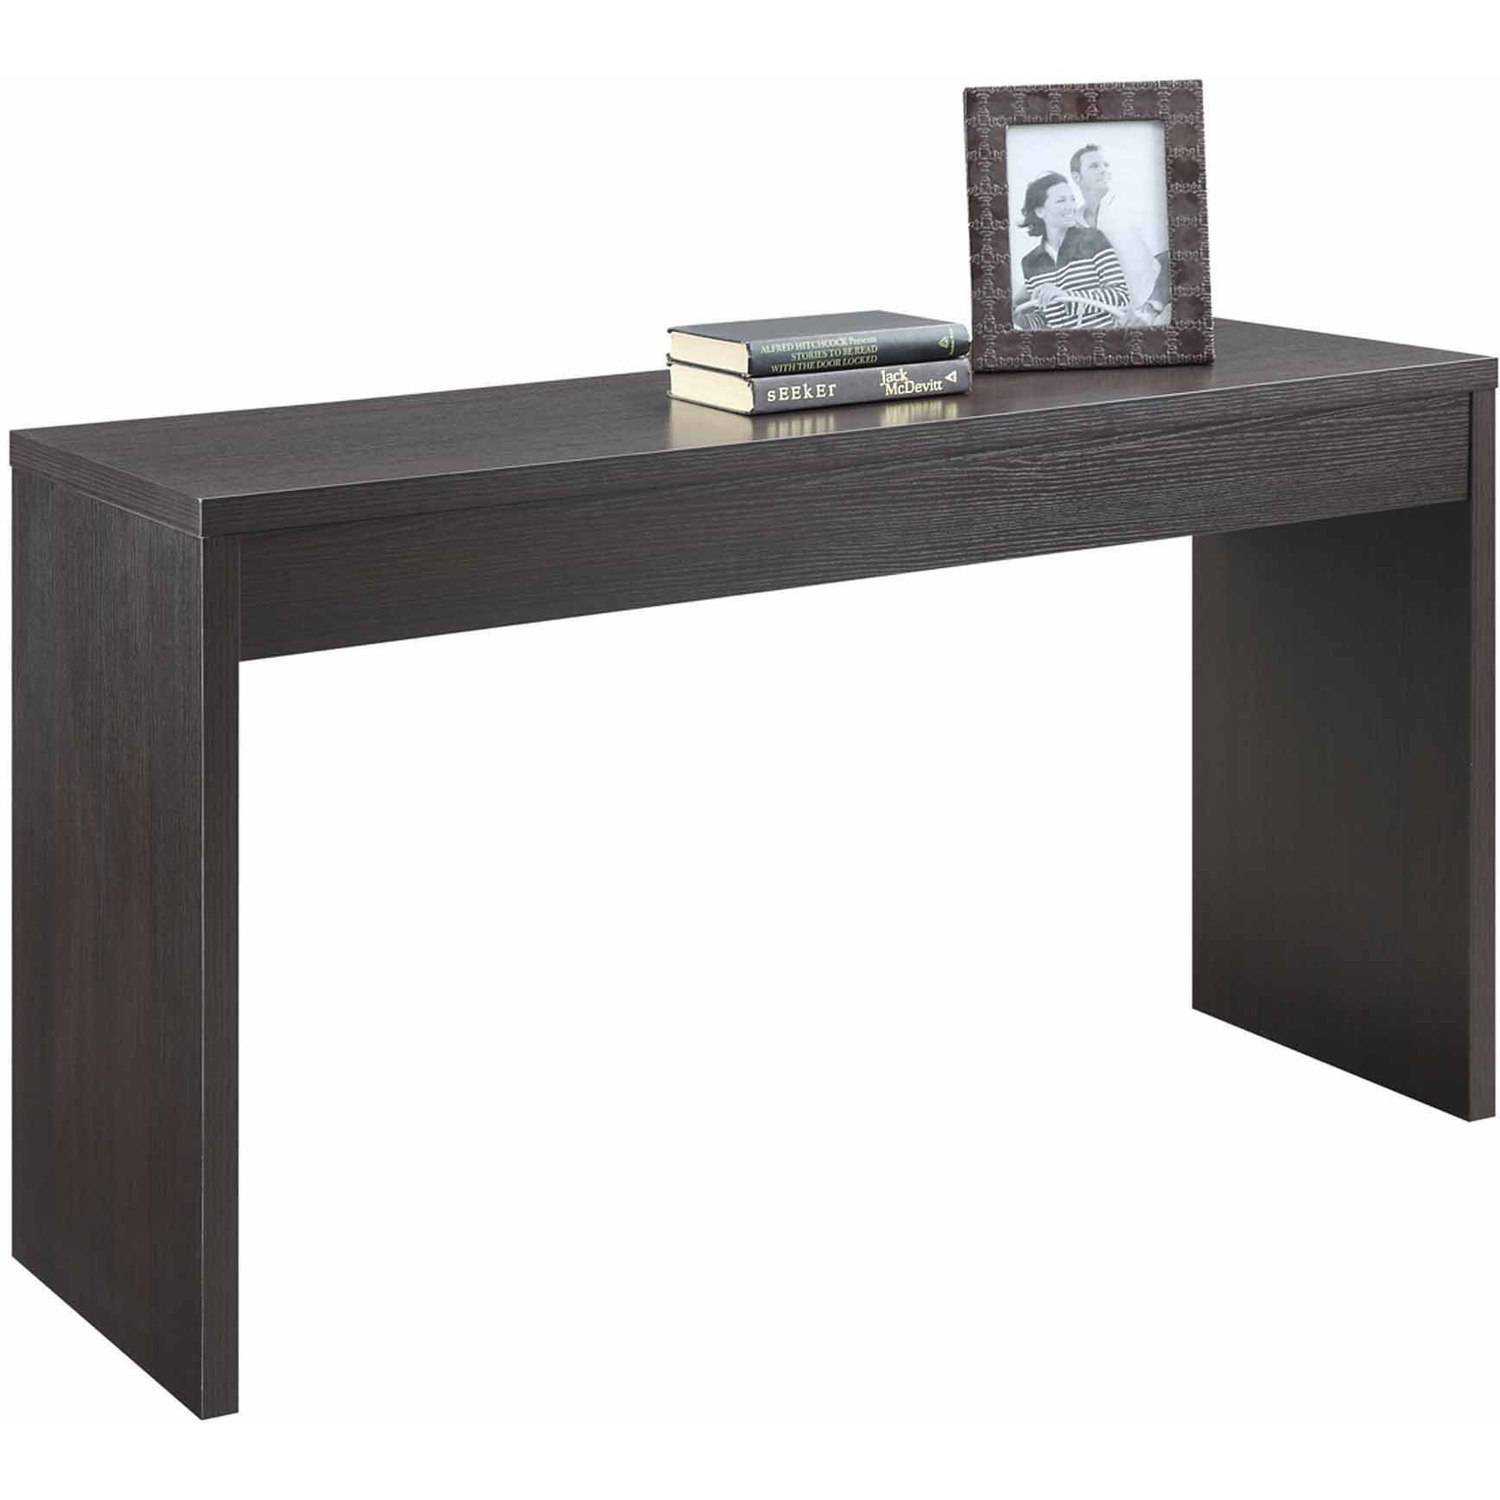 Convenience Concepts Northfield Hall Console Table, Multiplu2026